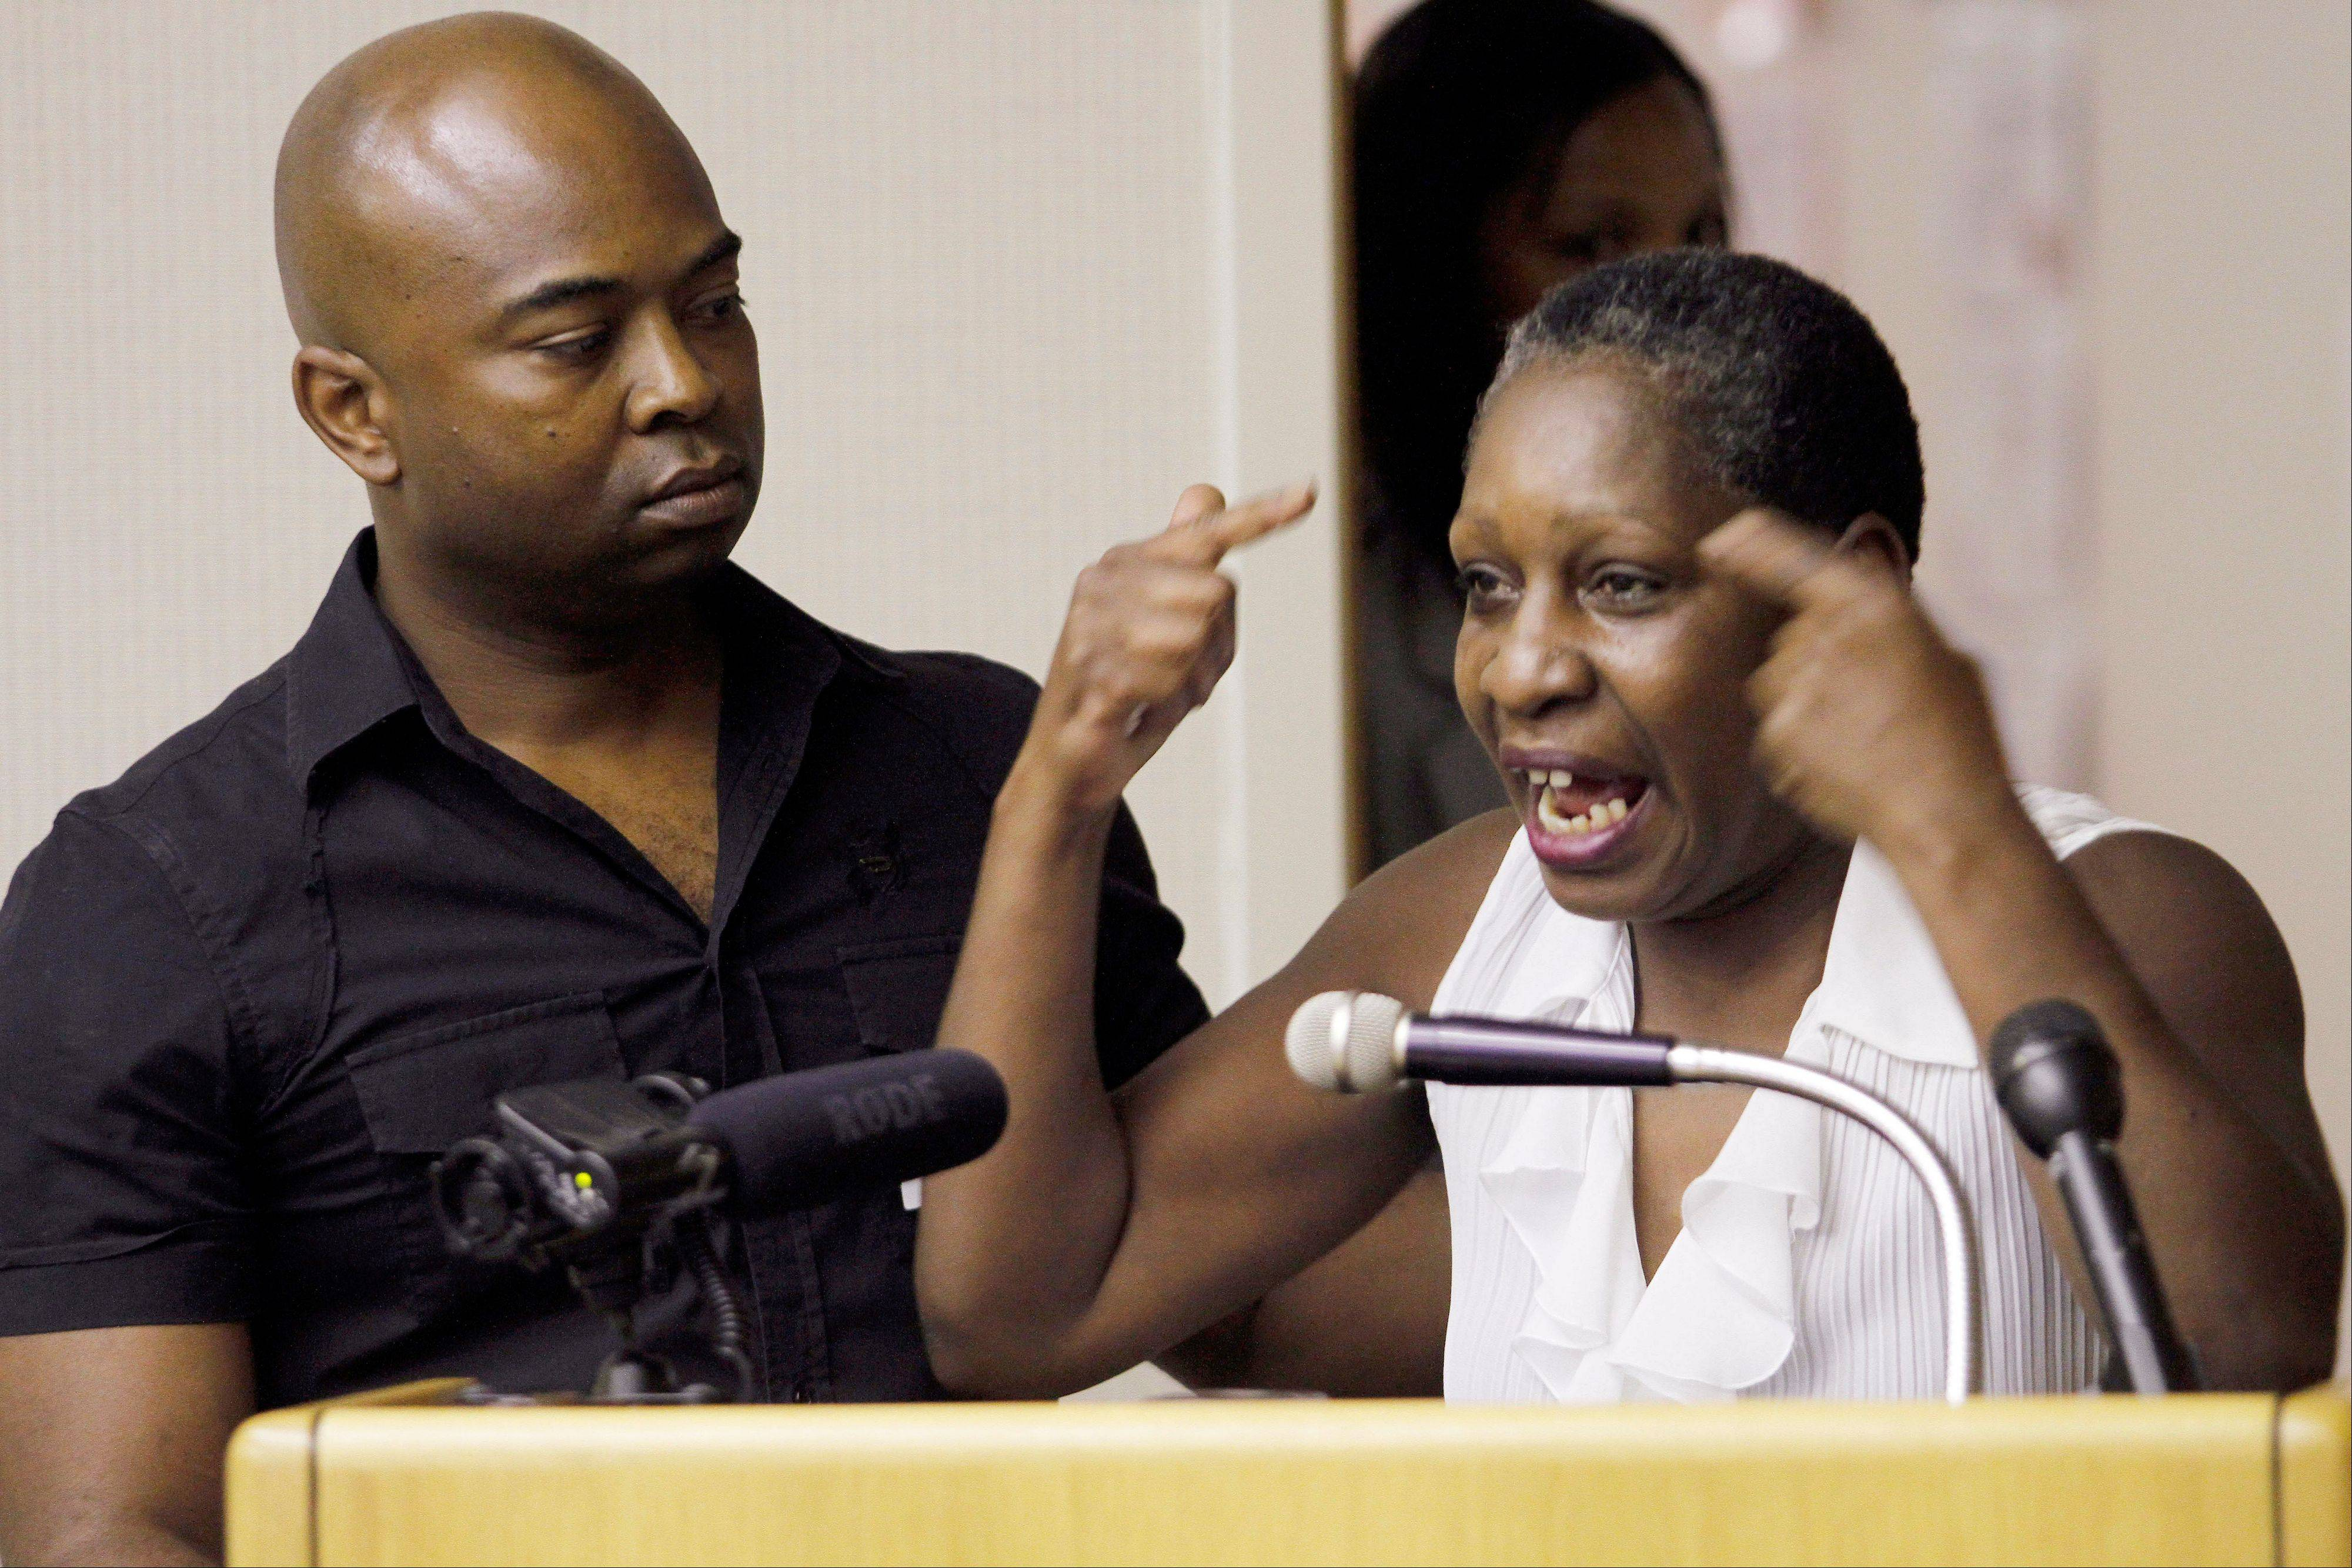 Elaine Riddick is comforted by her son, Tony, as she testifies before the Justice for Sterilization Victims Foundation task force compensation hearing in Raleigh, N.C. Victims of a state-sponsored sterilization program and their family members are urging a governor-appointed task force to recommend financial compensation for the suffering they endured under North Carolina's discontinued eugenics program.